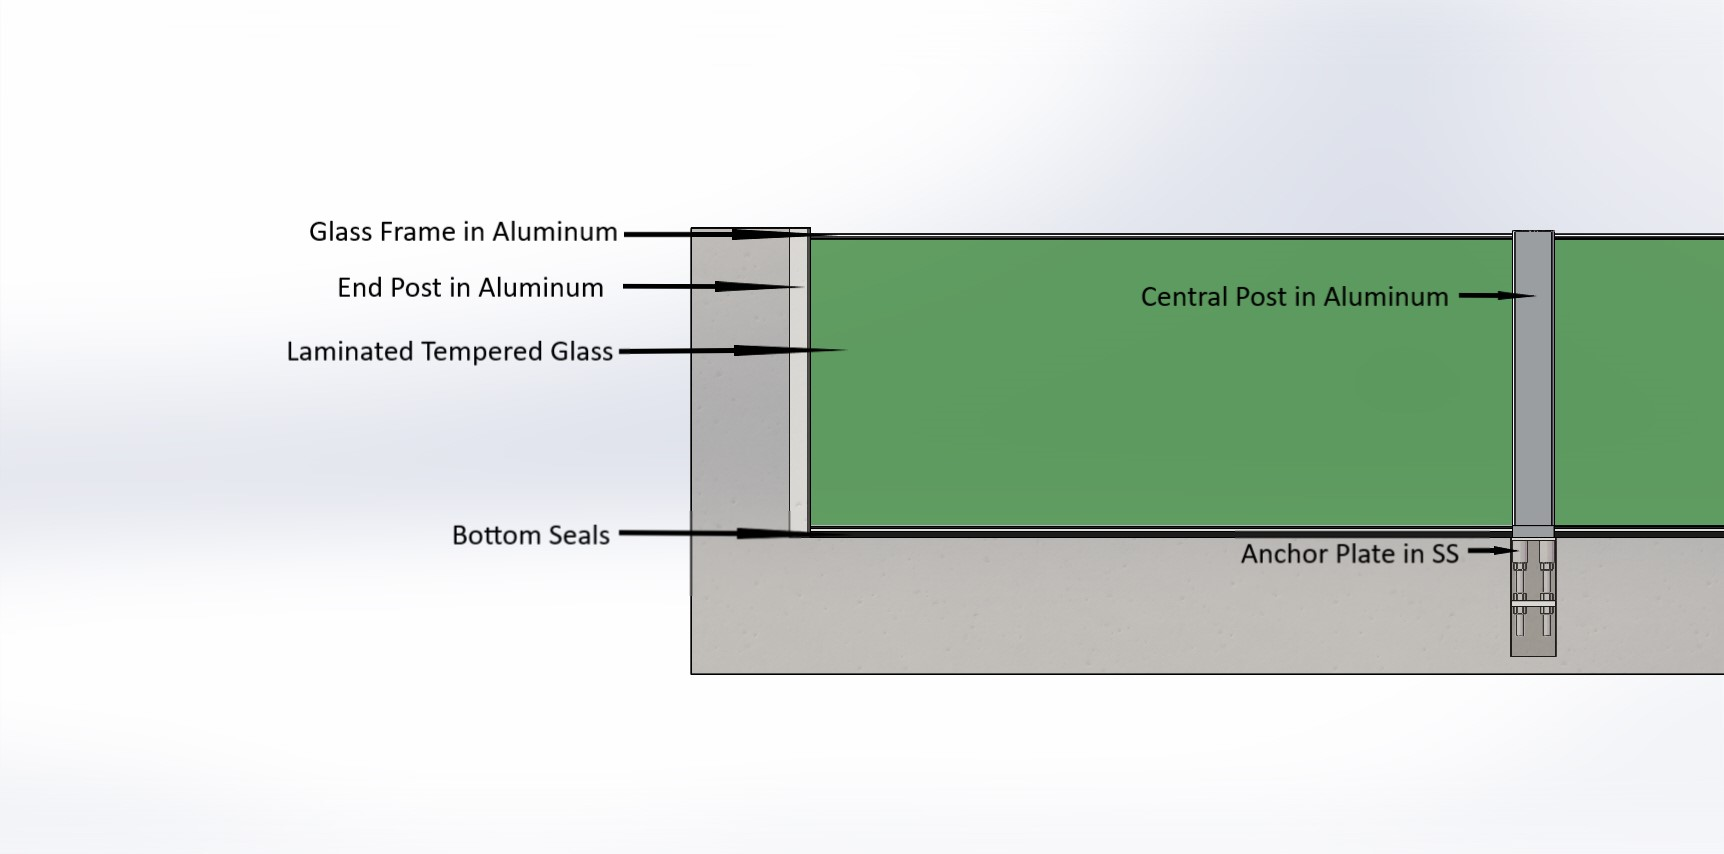 Structure of Glass Wall Flood Barrier